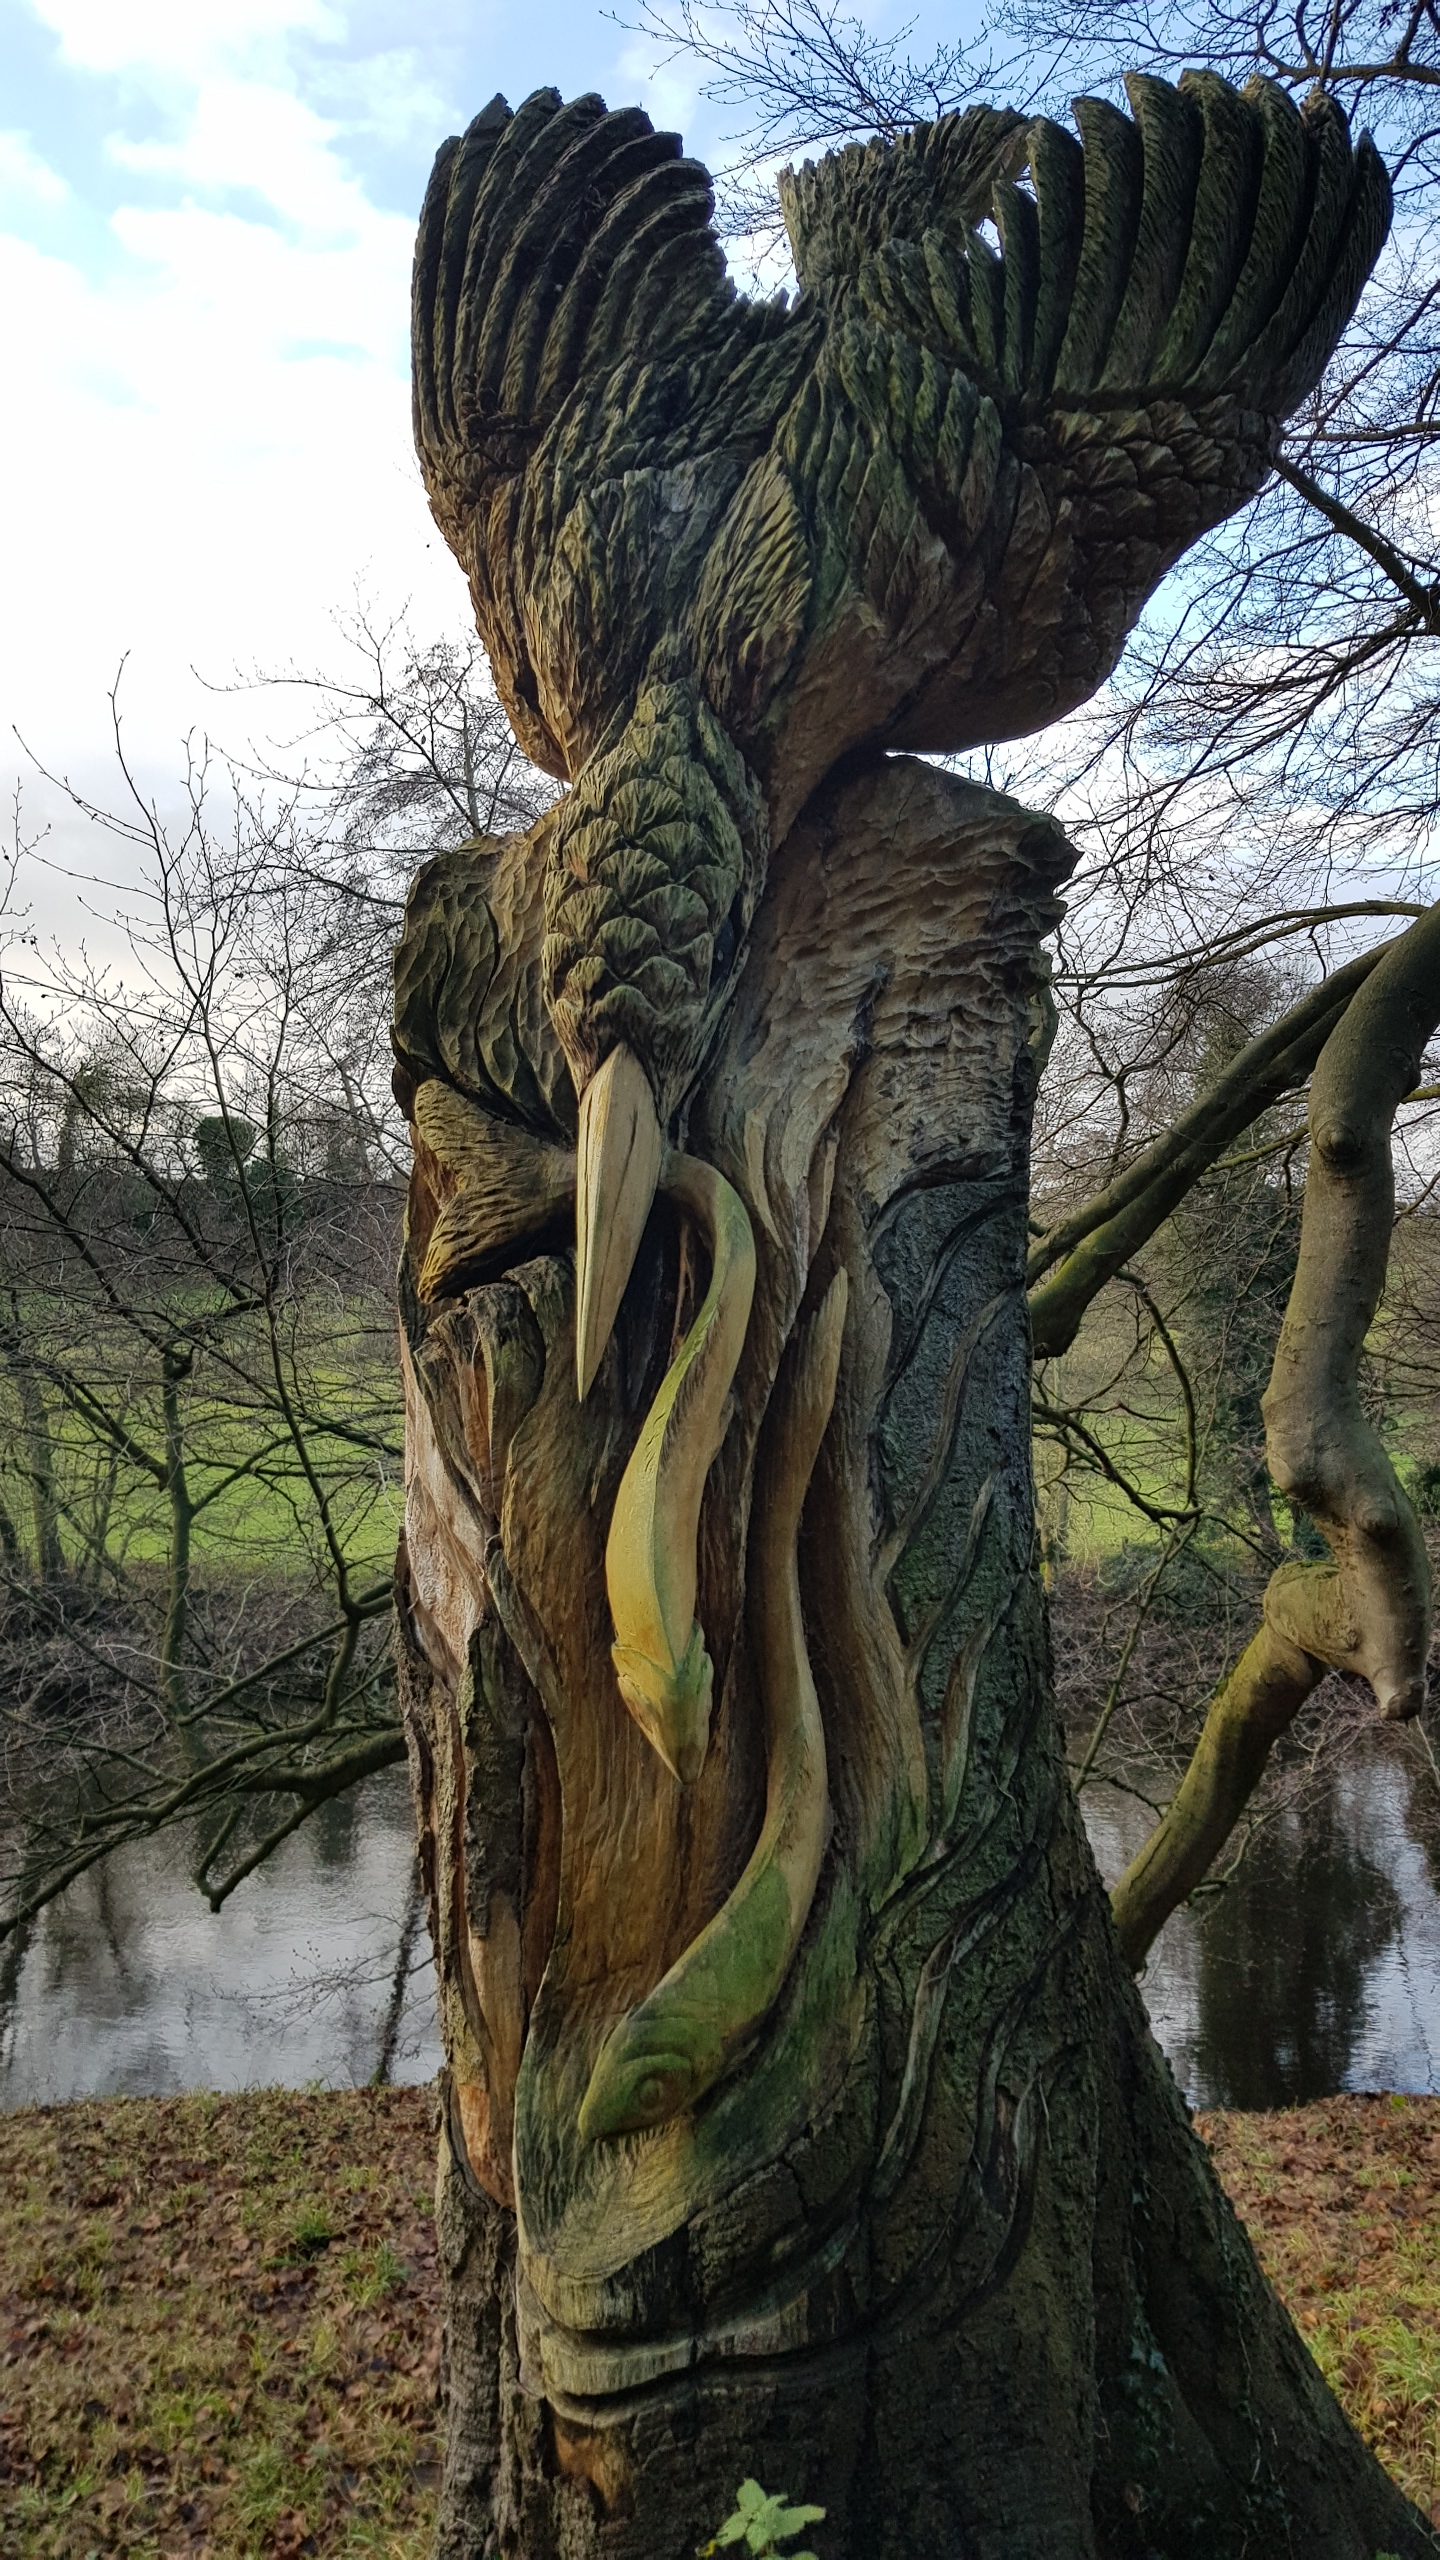 Wooden kingfisher catching fish carved into a tall stump of a tree trunk